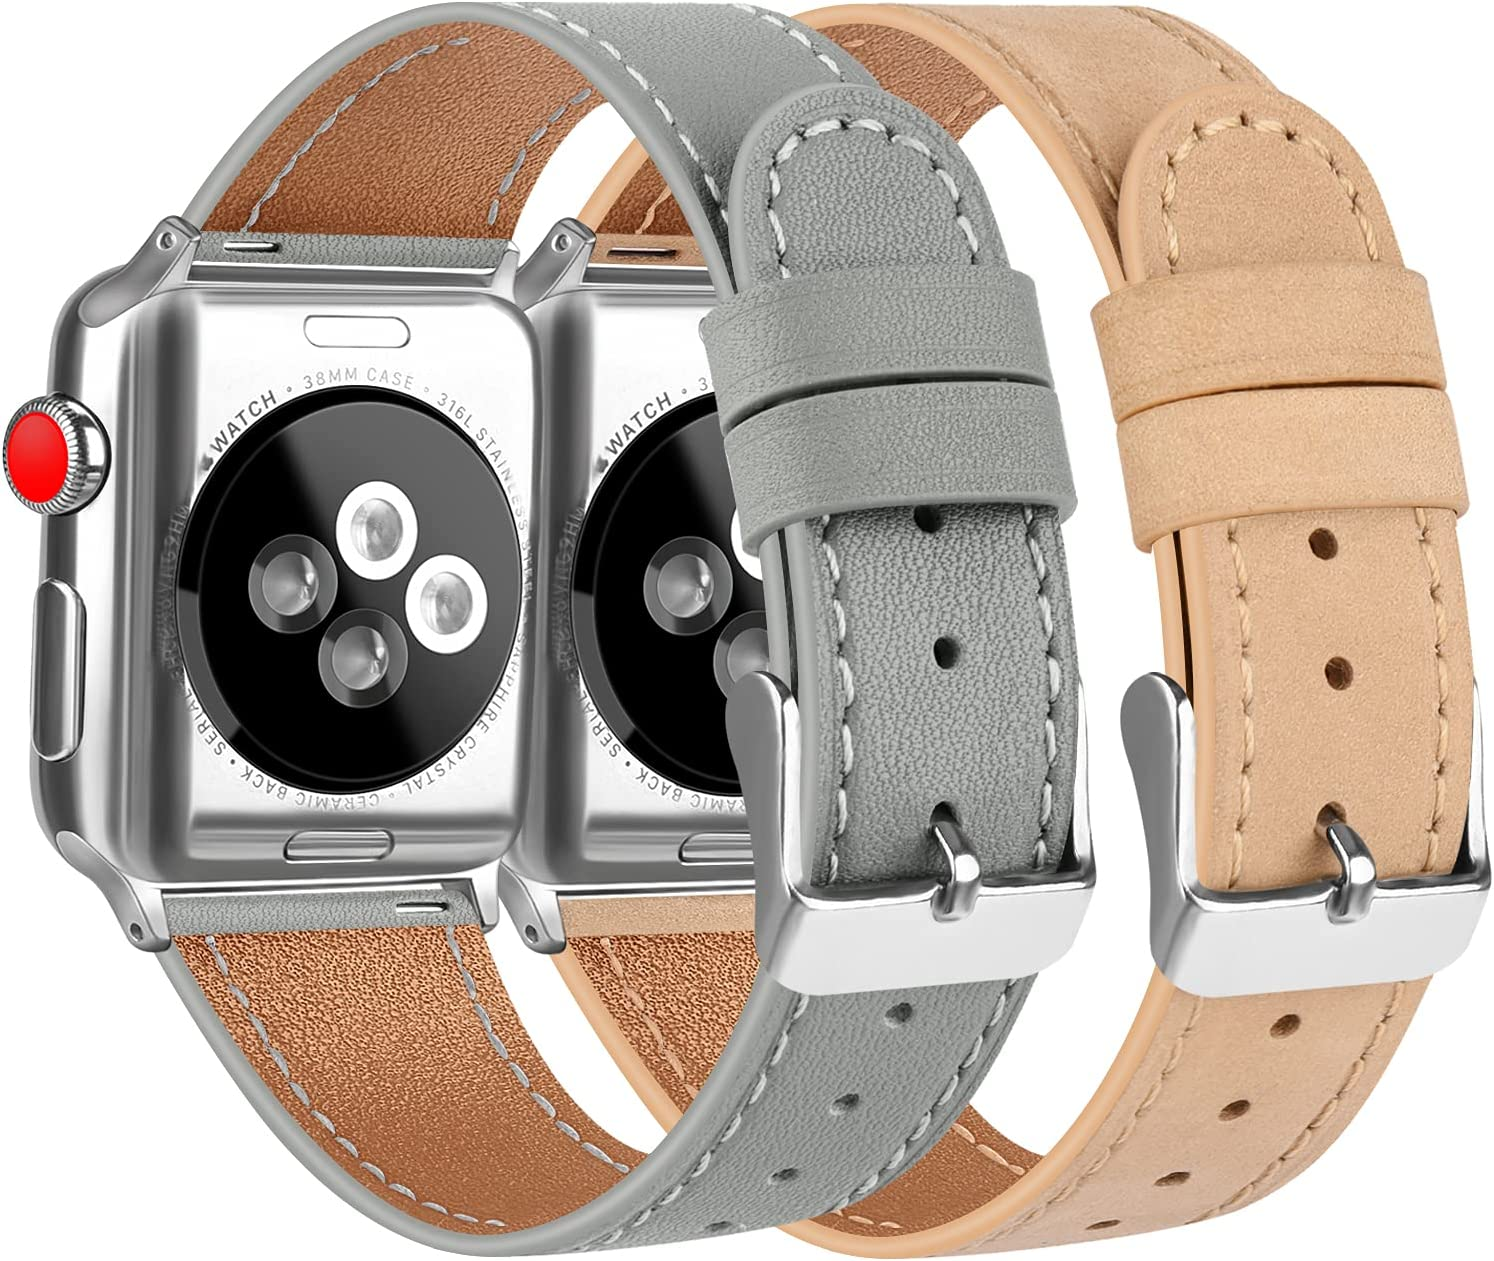 [2 Pack] Leather Bands Compatible with Apple Watch Bands 44mm 42mm for Women Men, Soft Leather Straps for iWatch SE & Series 6, Series 5, Series 4, Series 3, Series 2, Series 1, Grey & Apricot